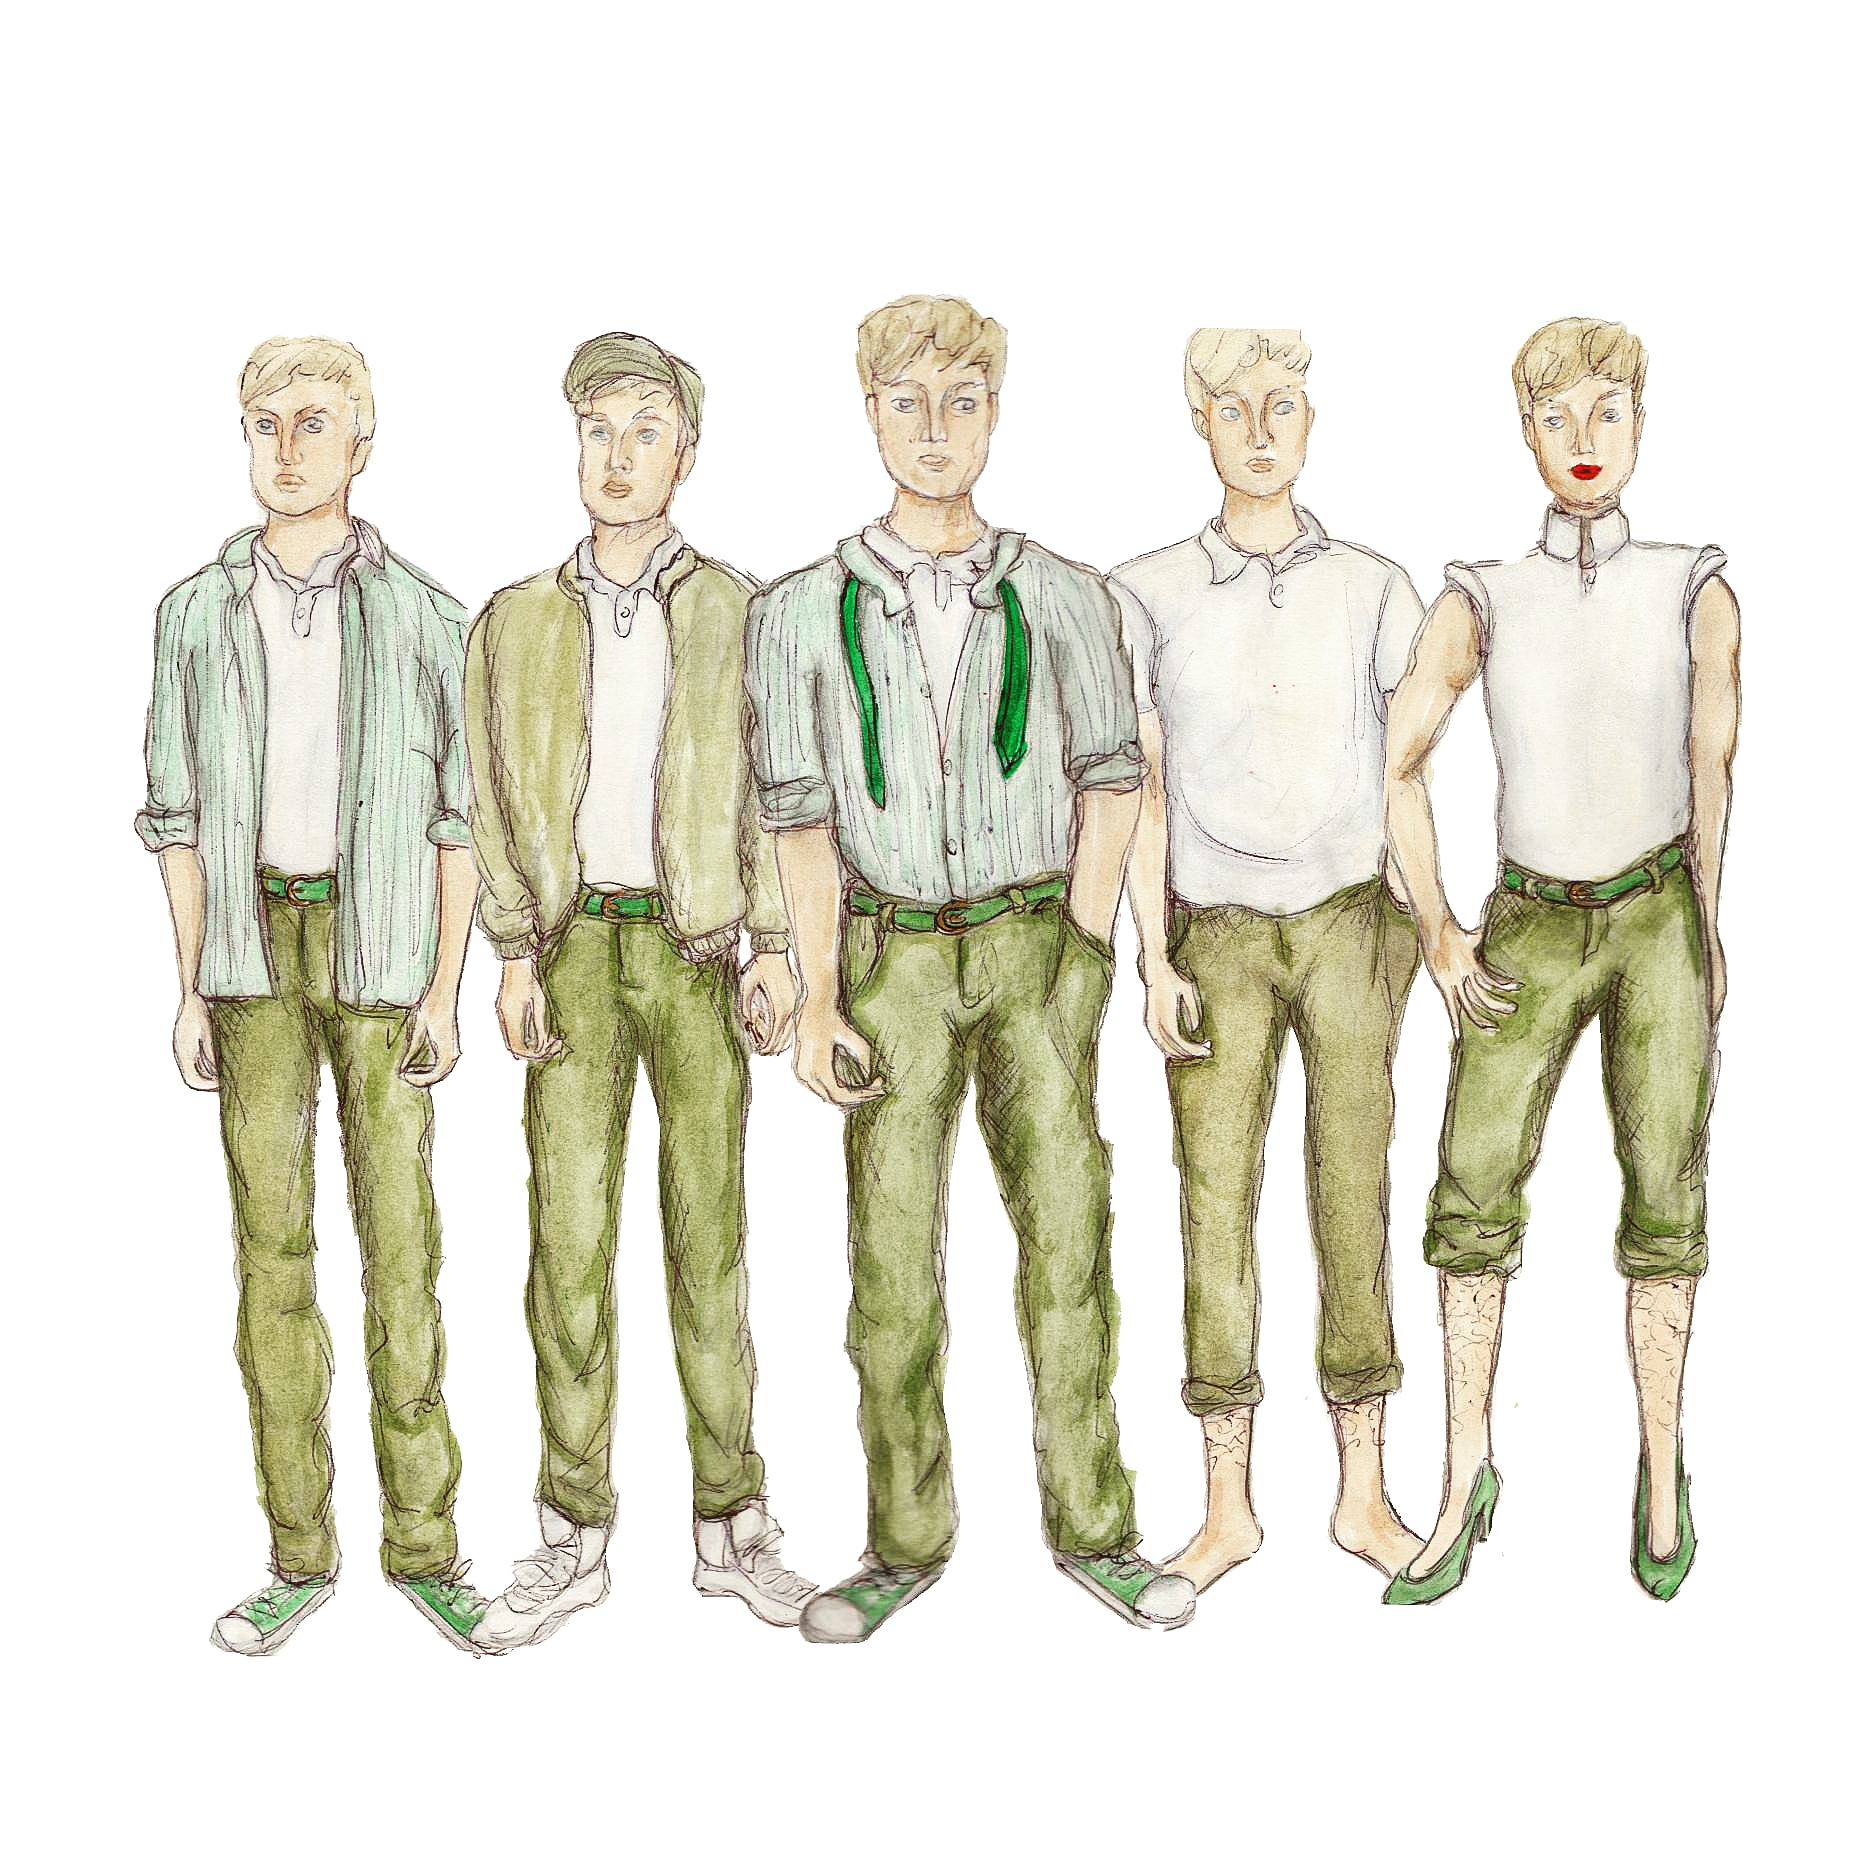 'Revolt' Costume Designs